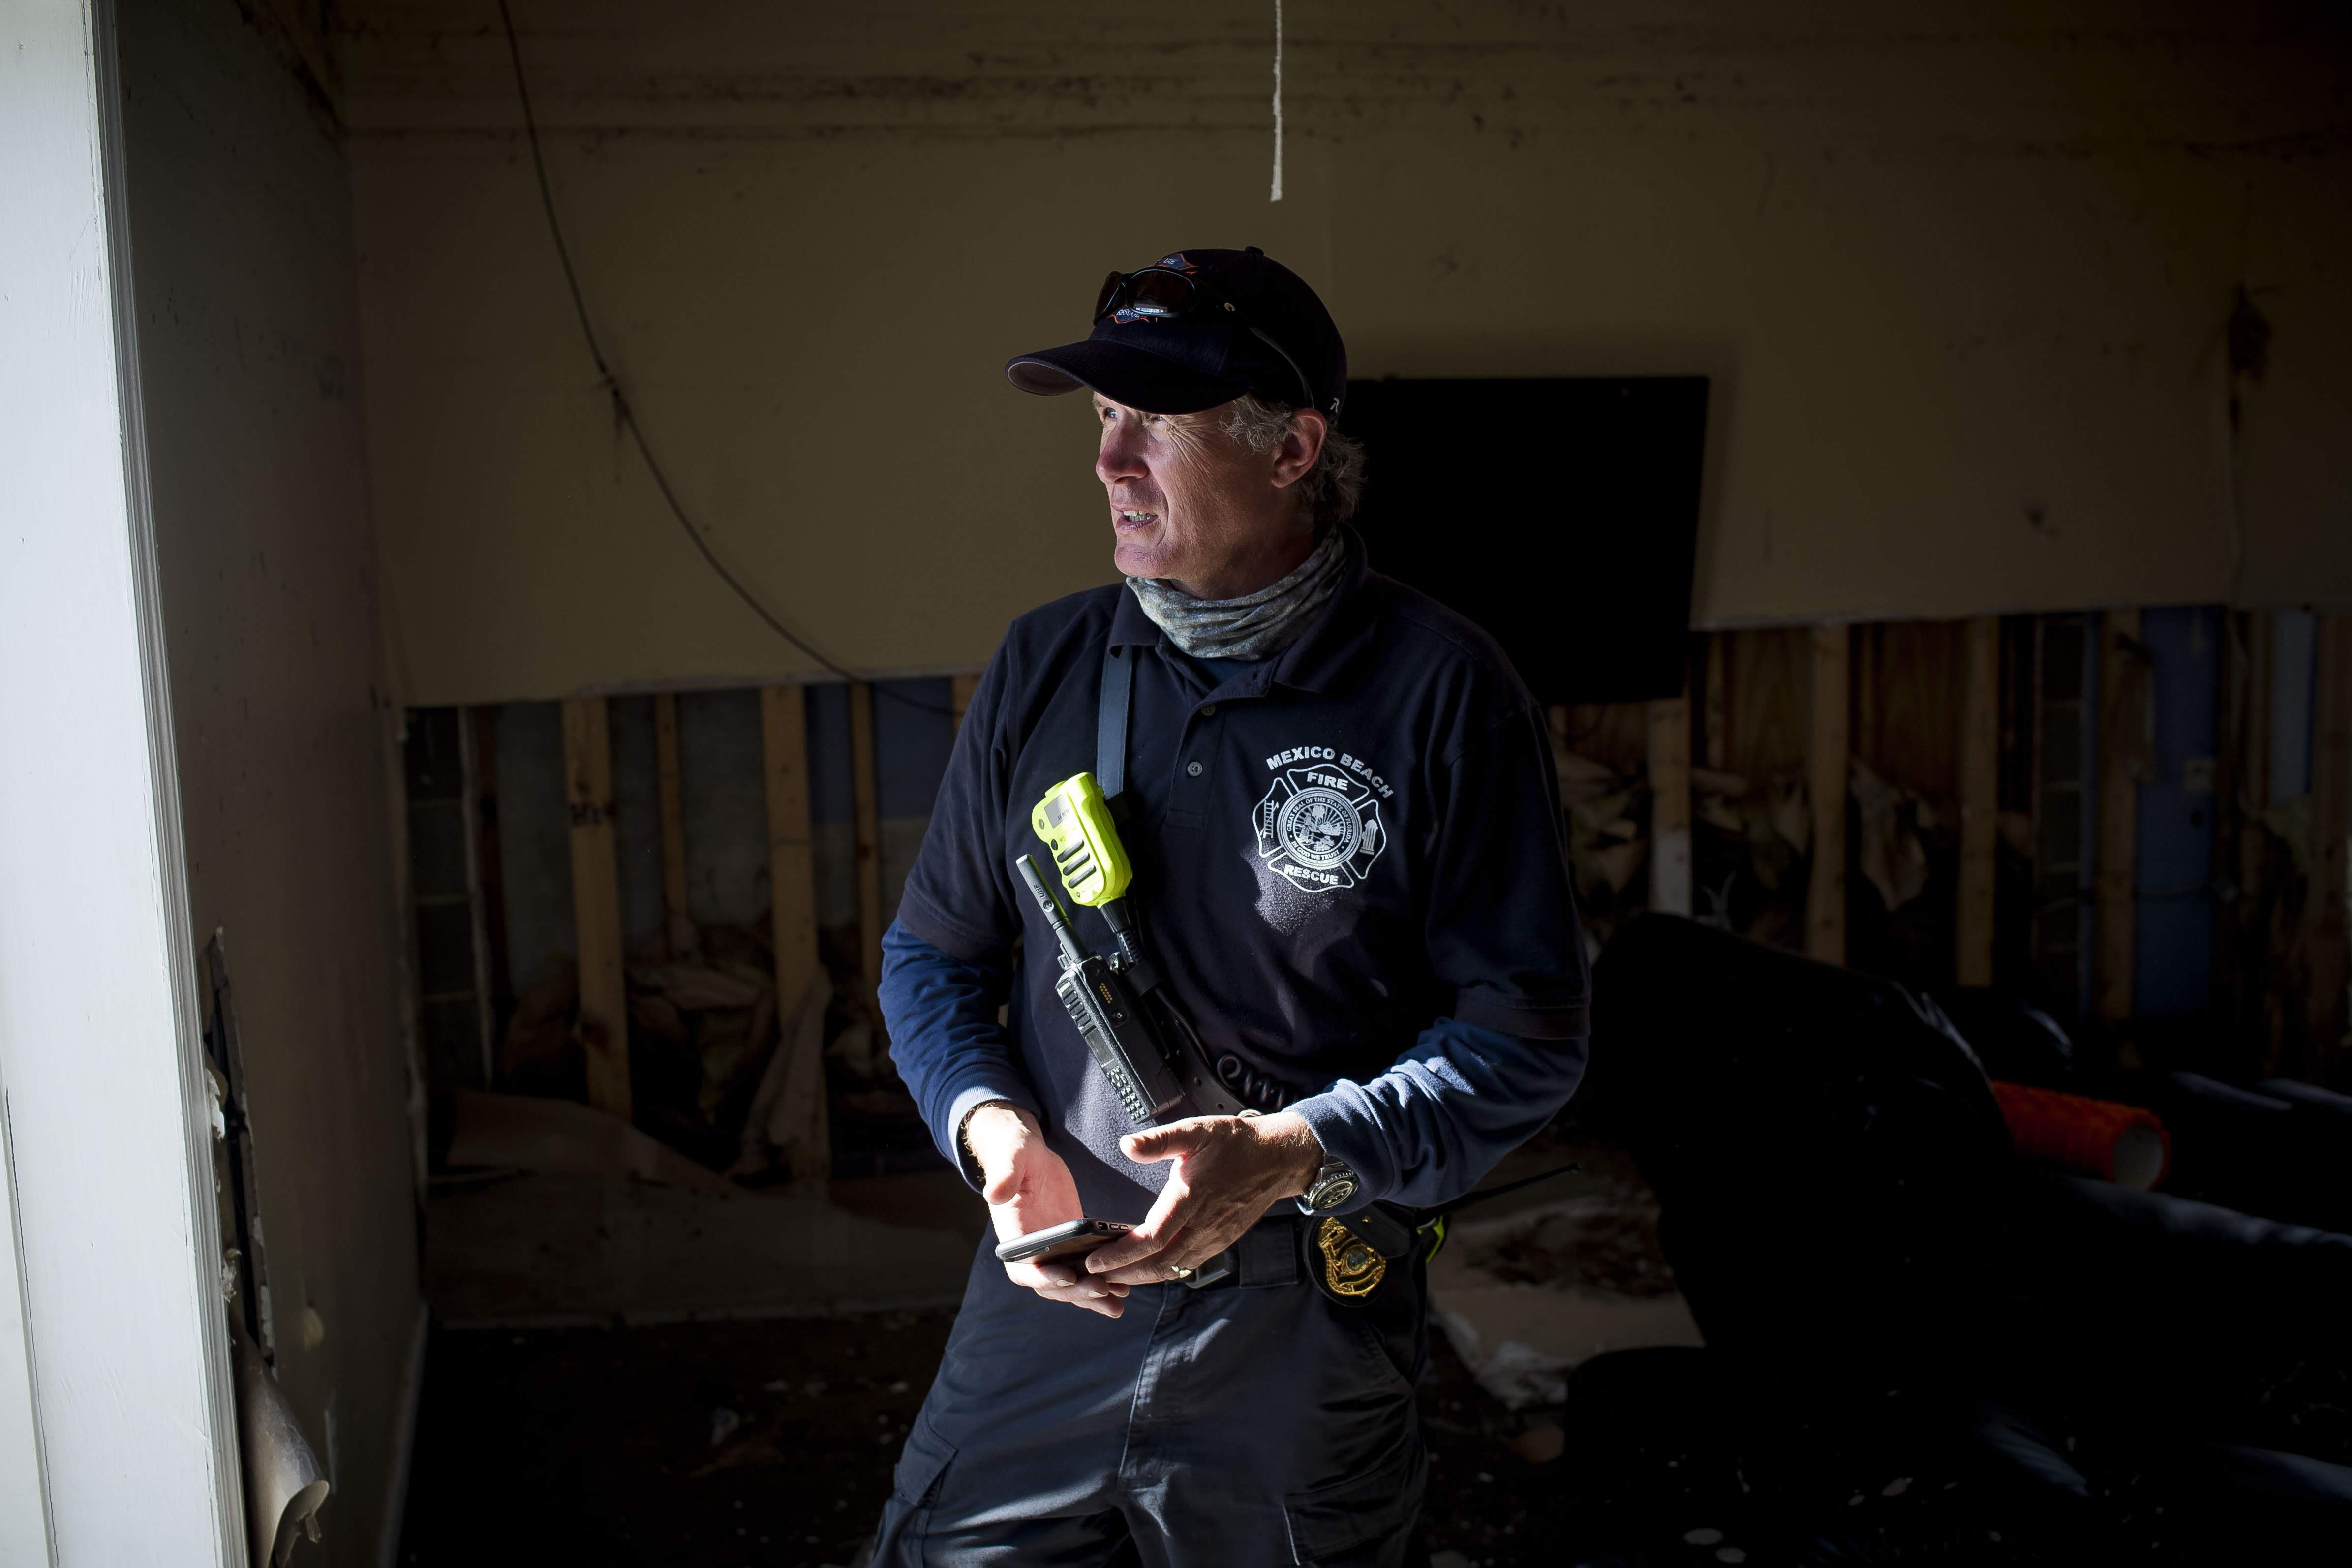 Mexico Beach Fire Interim Chief Donald 'Sandy' Walker at the fire station that was destroyed by Hurricane Michael. The small Florida town suffered a direct hit from Hurricane Michael, and Walker and his crew have been working to help their community recover.  (Photo by Zack Wittman for Direct Relief)